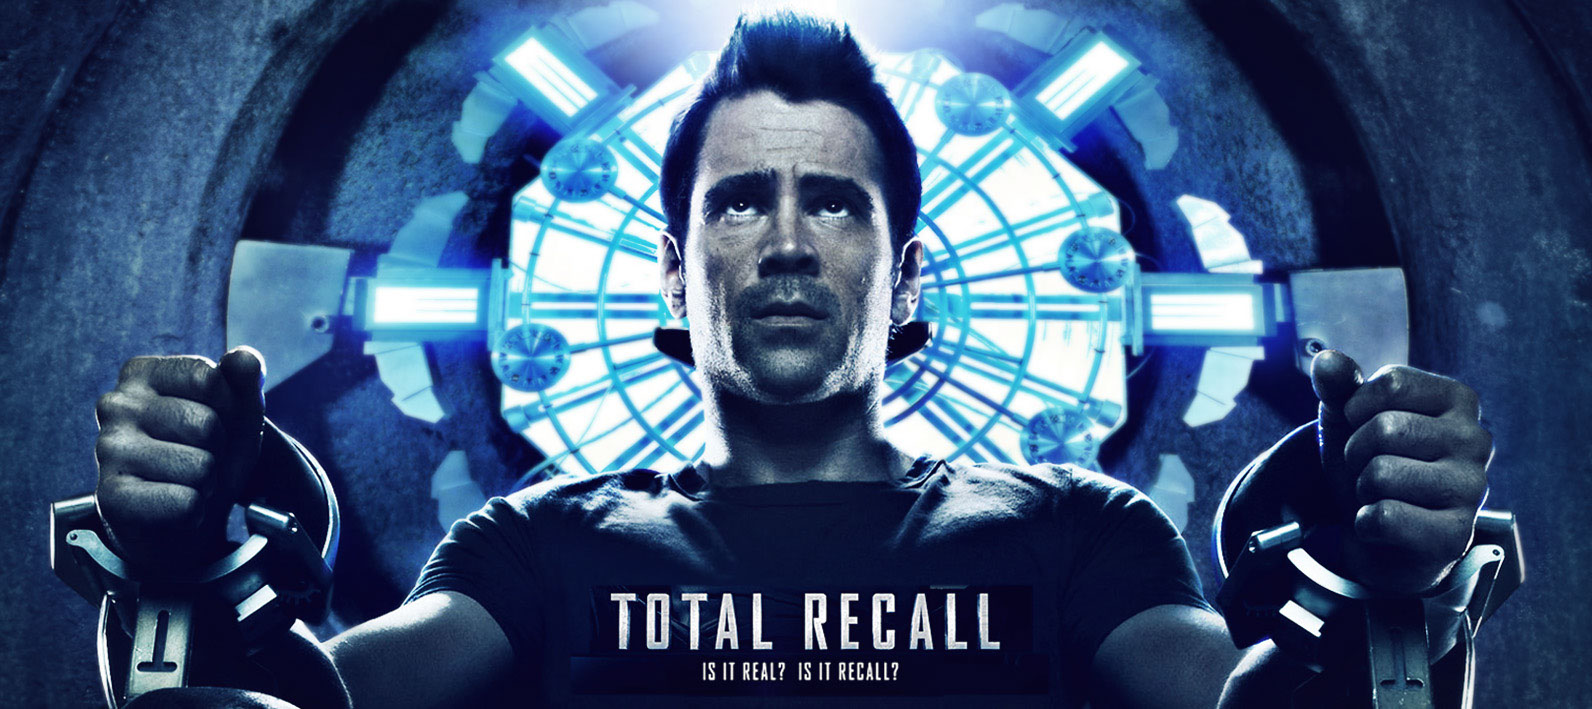 Photo-Imaging_Entertainment_Total Recall blue-Mike Bryan